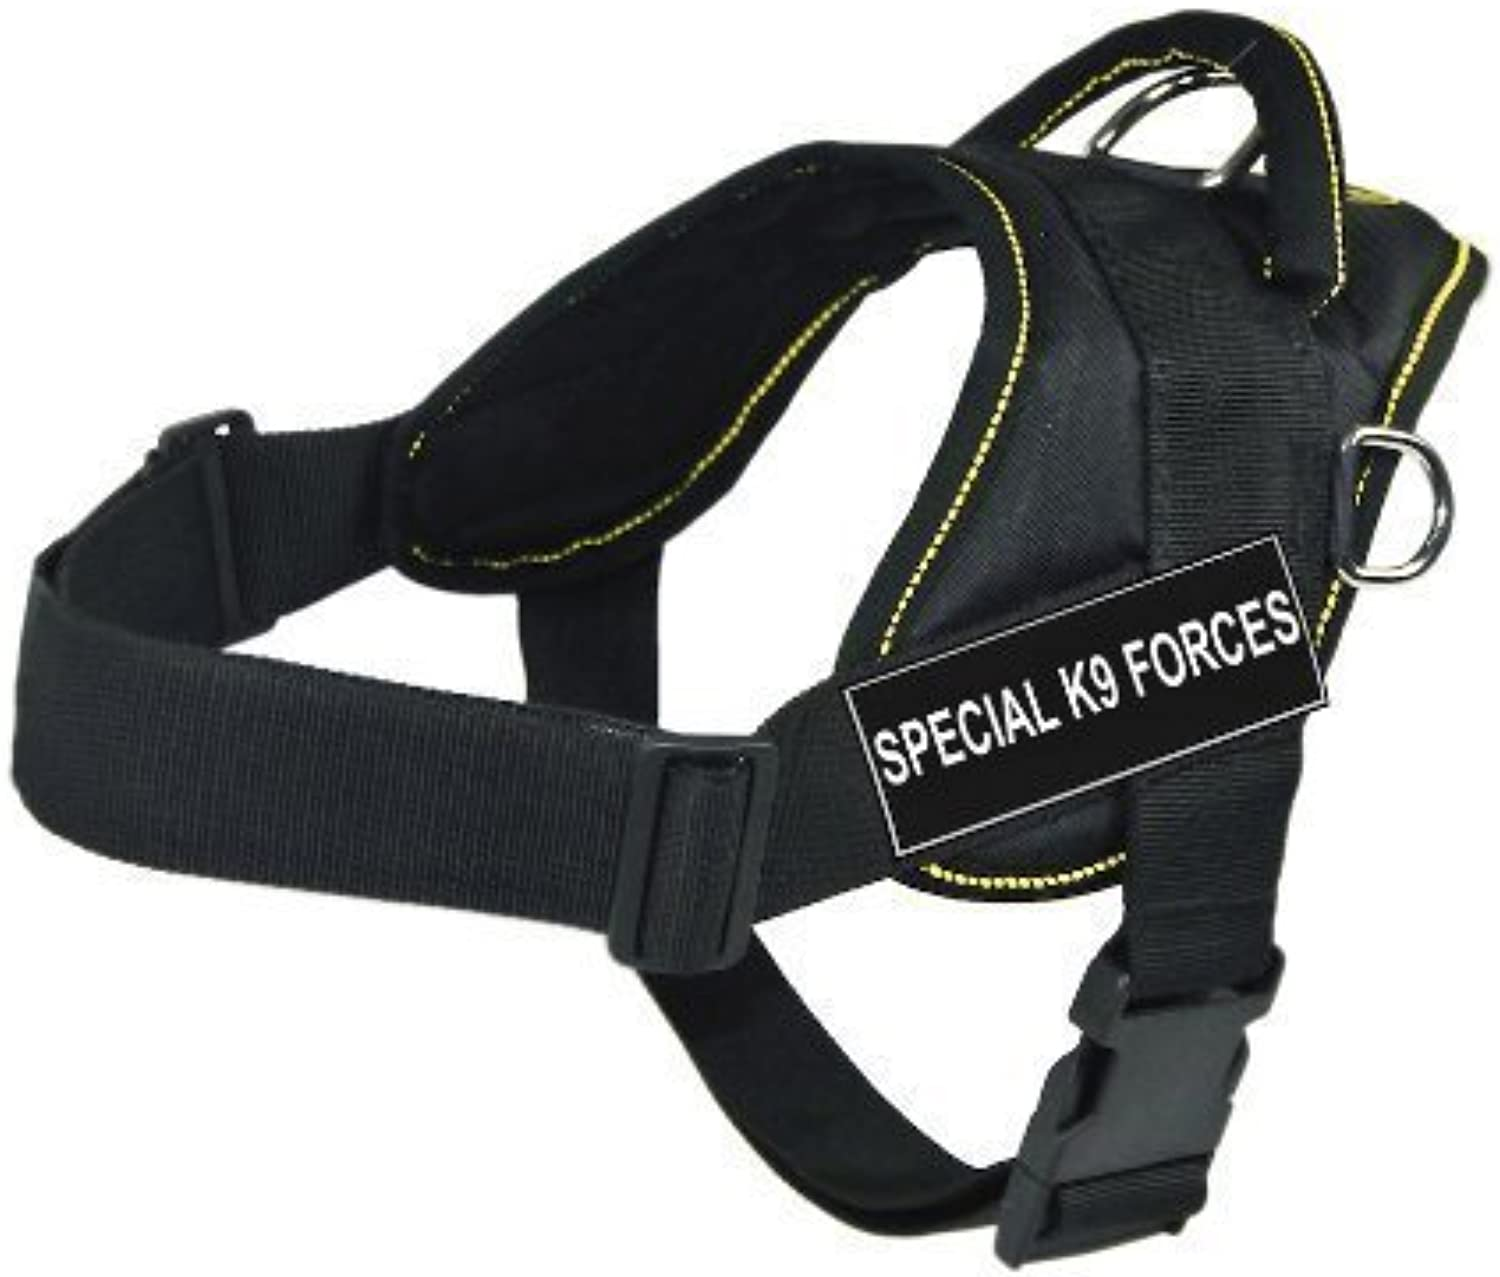 Dean & Tyler Fun Works Harness, Special K9 Forces, Black With Yellow Trim, Small  Fits Girth Size  56cm to 69cm